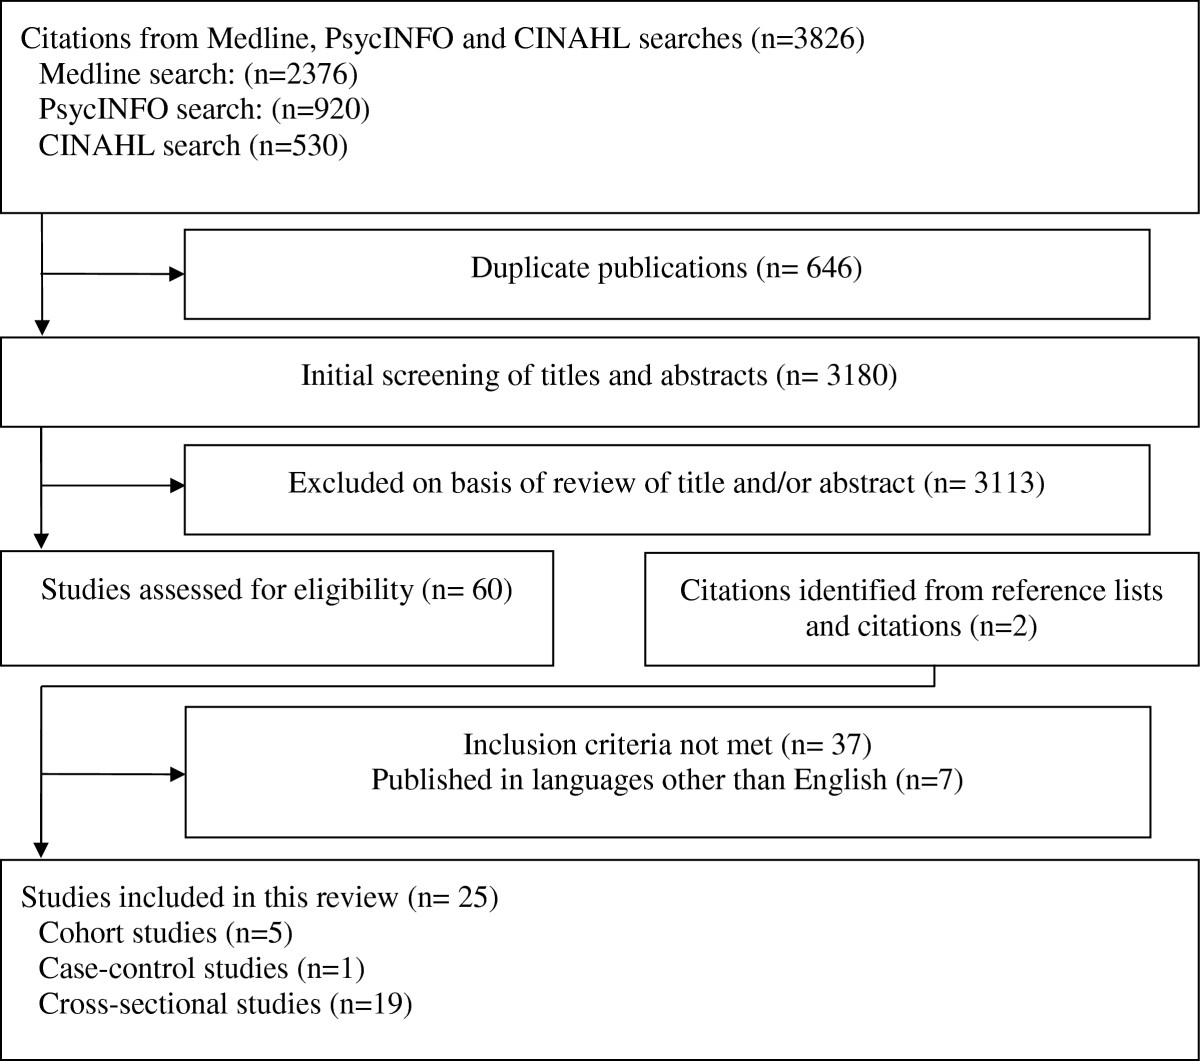 https://static-content.springer.com/image/art%3A10.1186%2F1471-244X-13-175/MediaObjects/12888_2013_Article_1364_Fig1_HTML.jpg